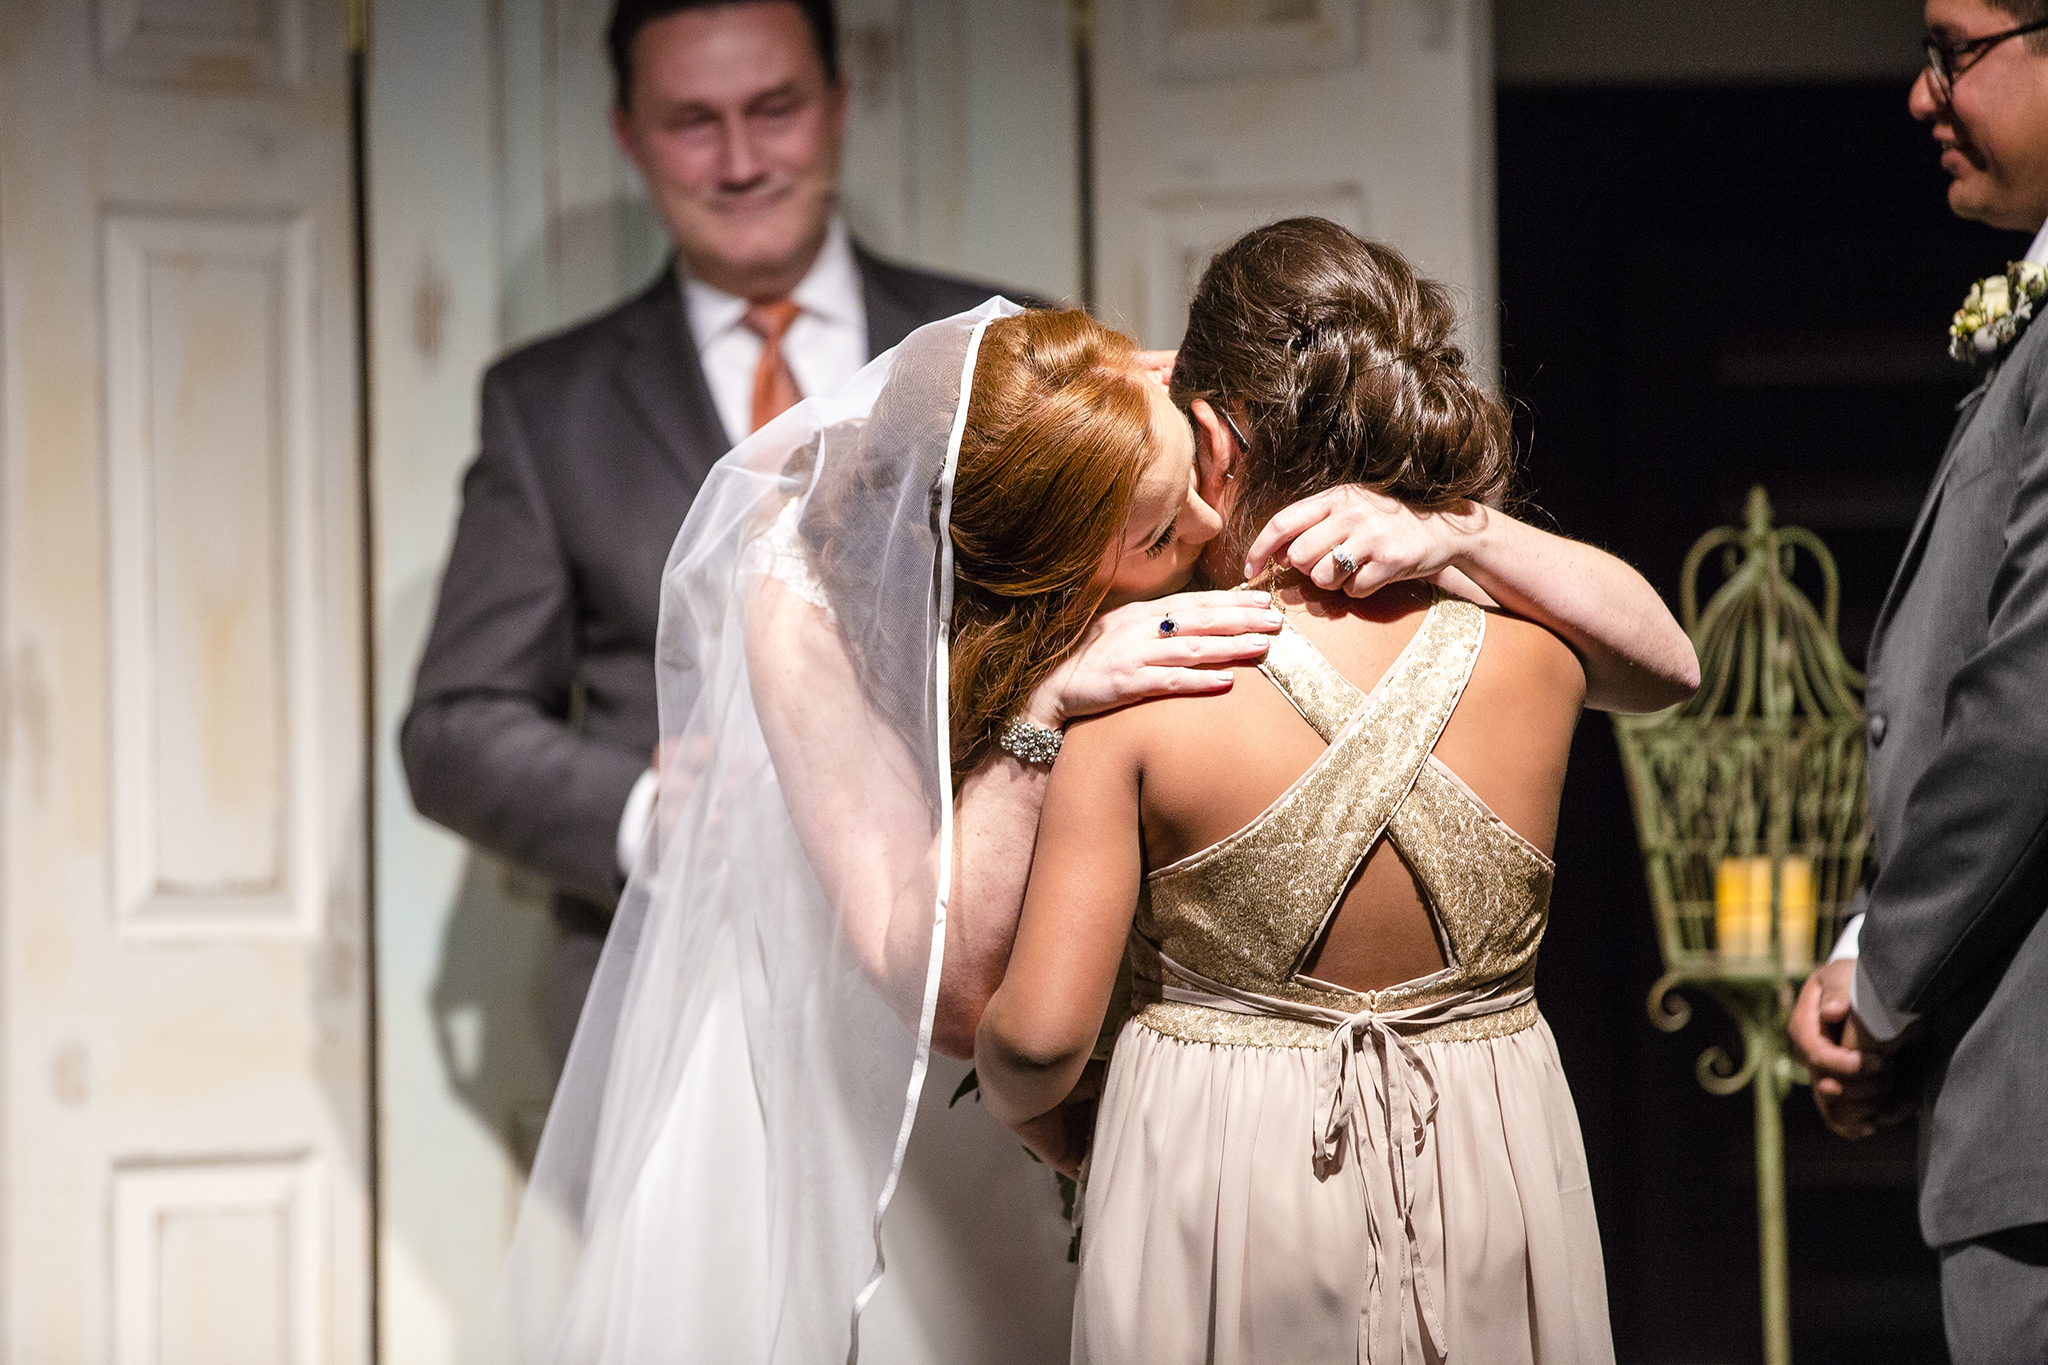 mother and daughter, sweet moment, wedding ceremony